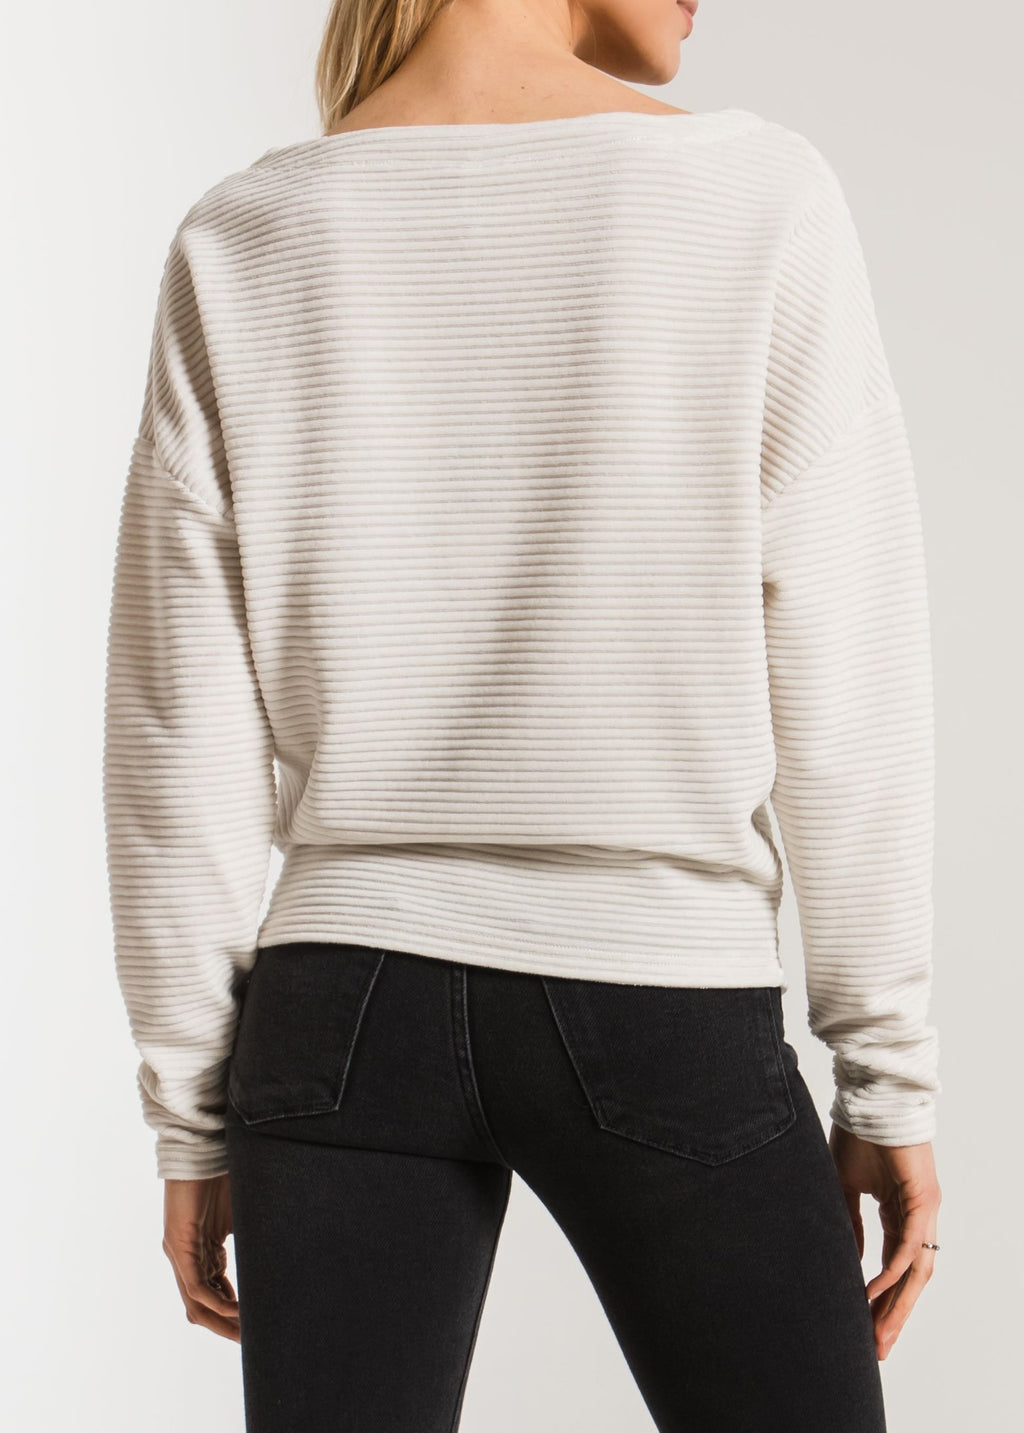 The Knit Corduroy Top